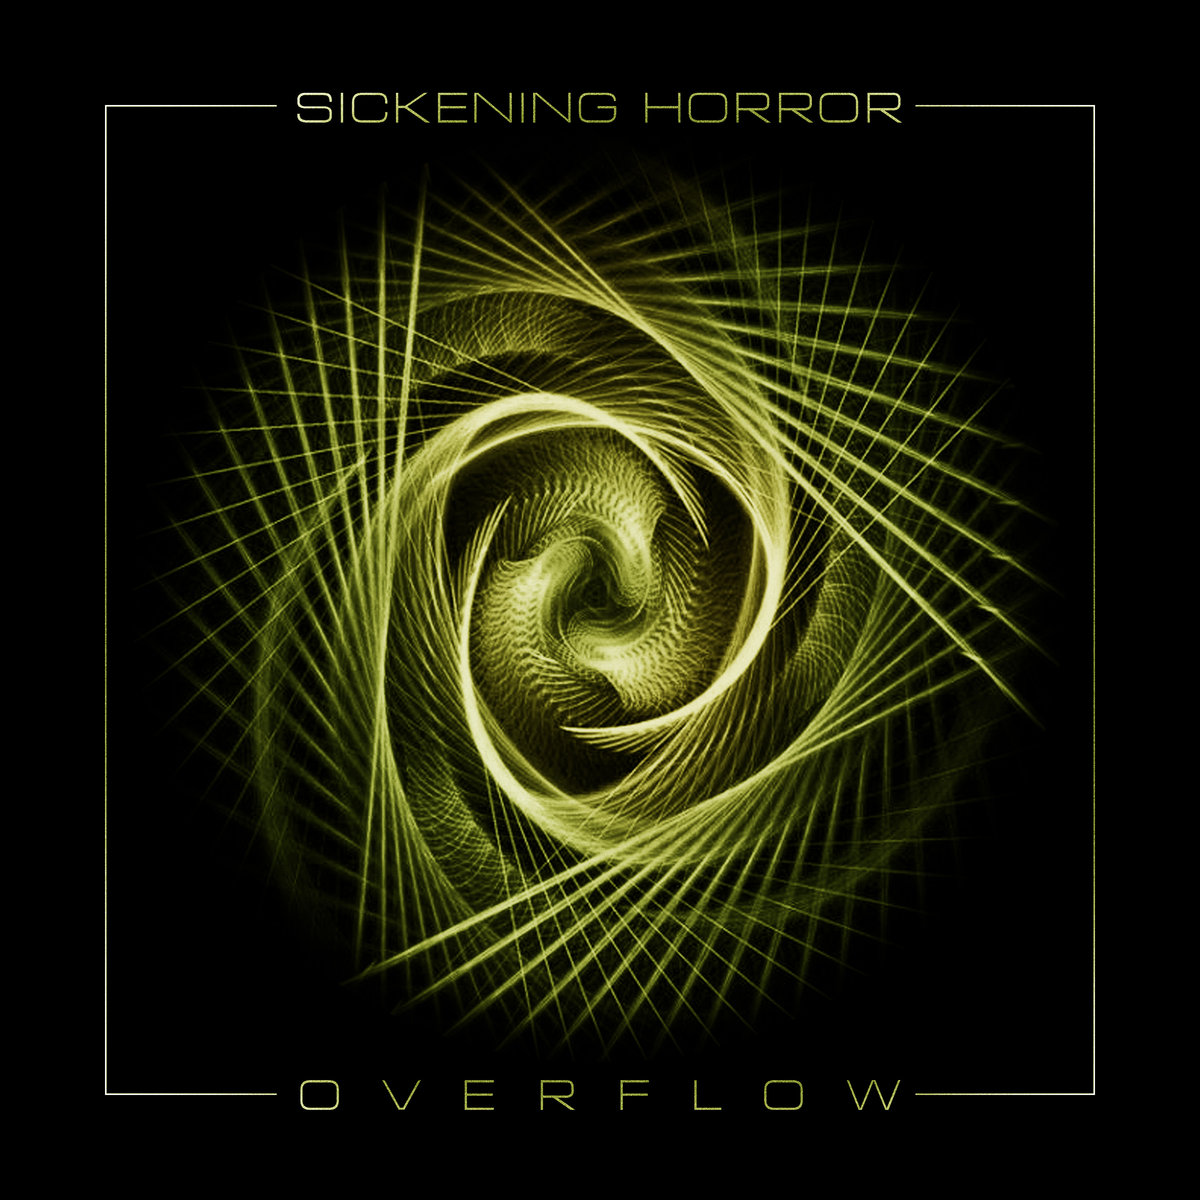 Sickening horror – Overflow